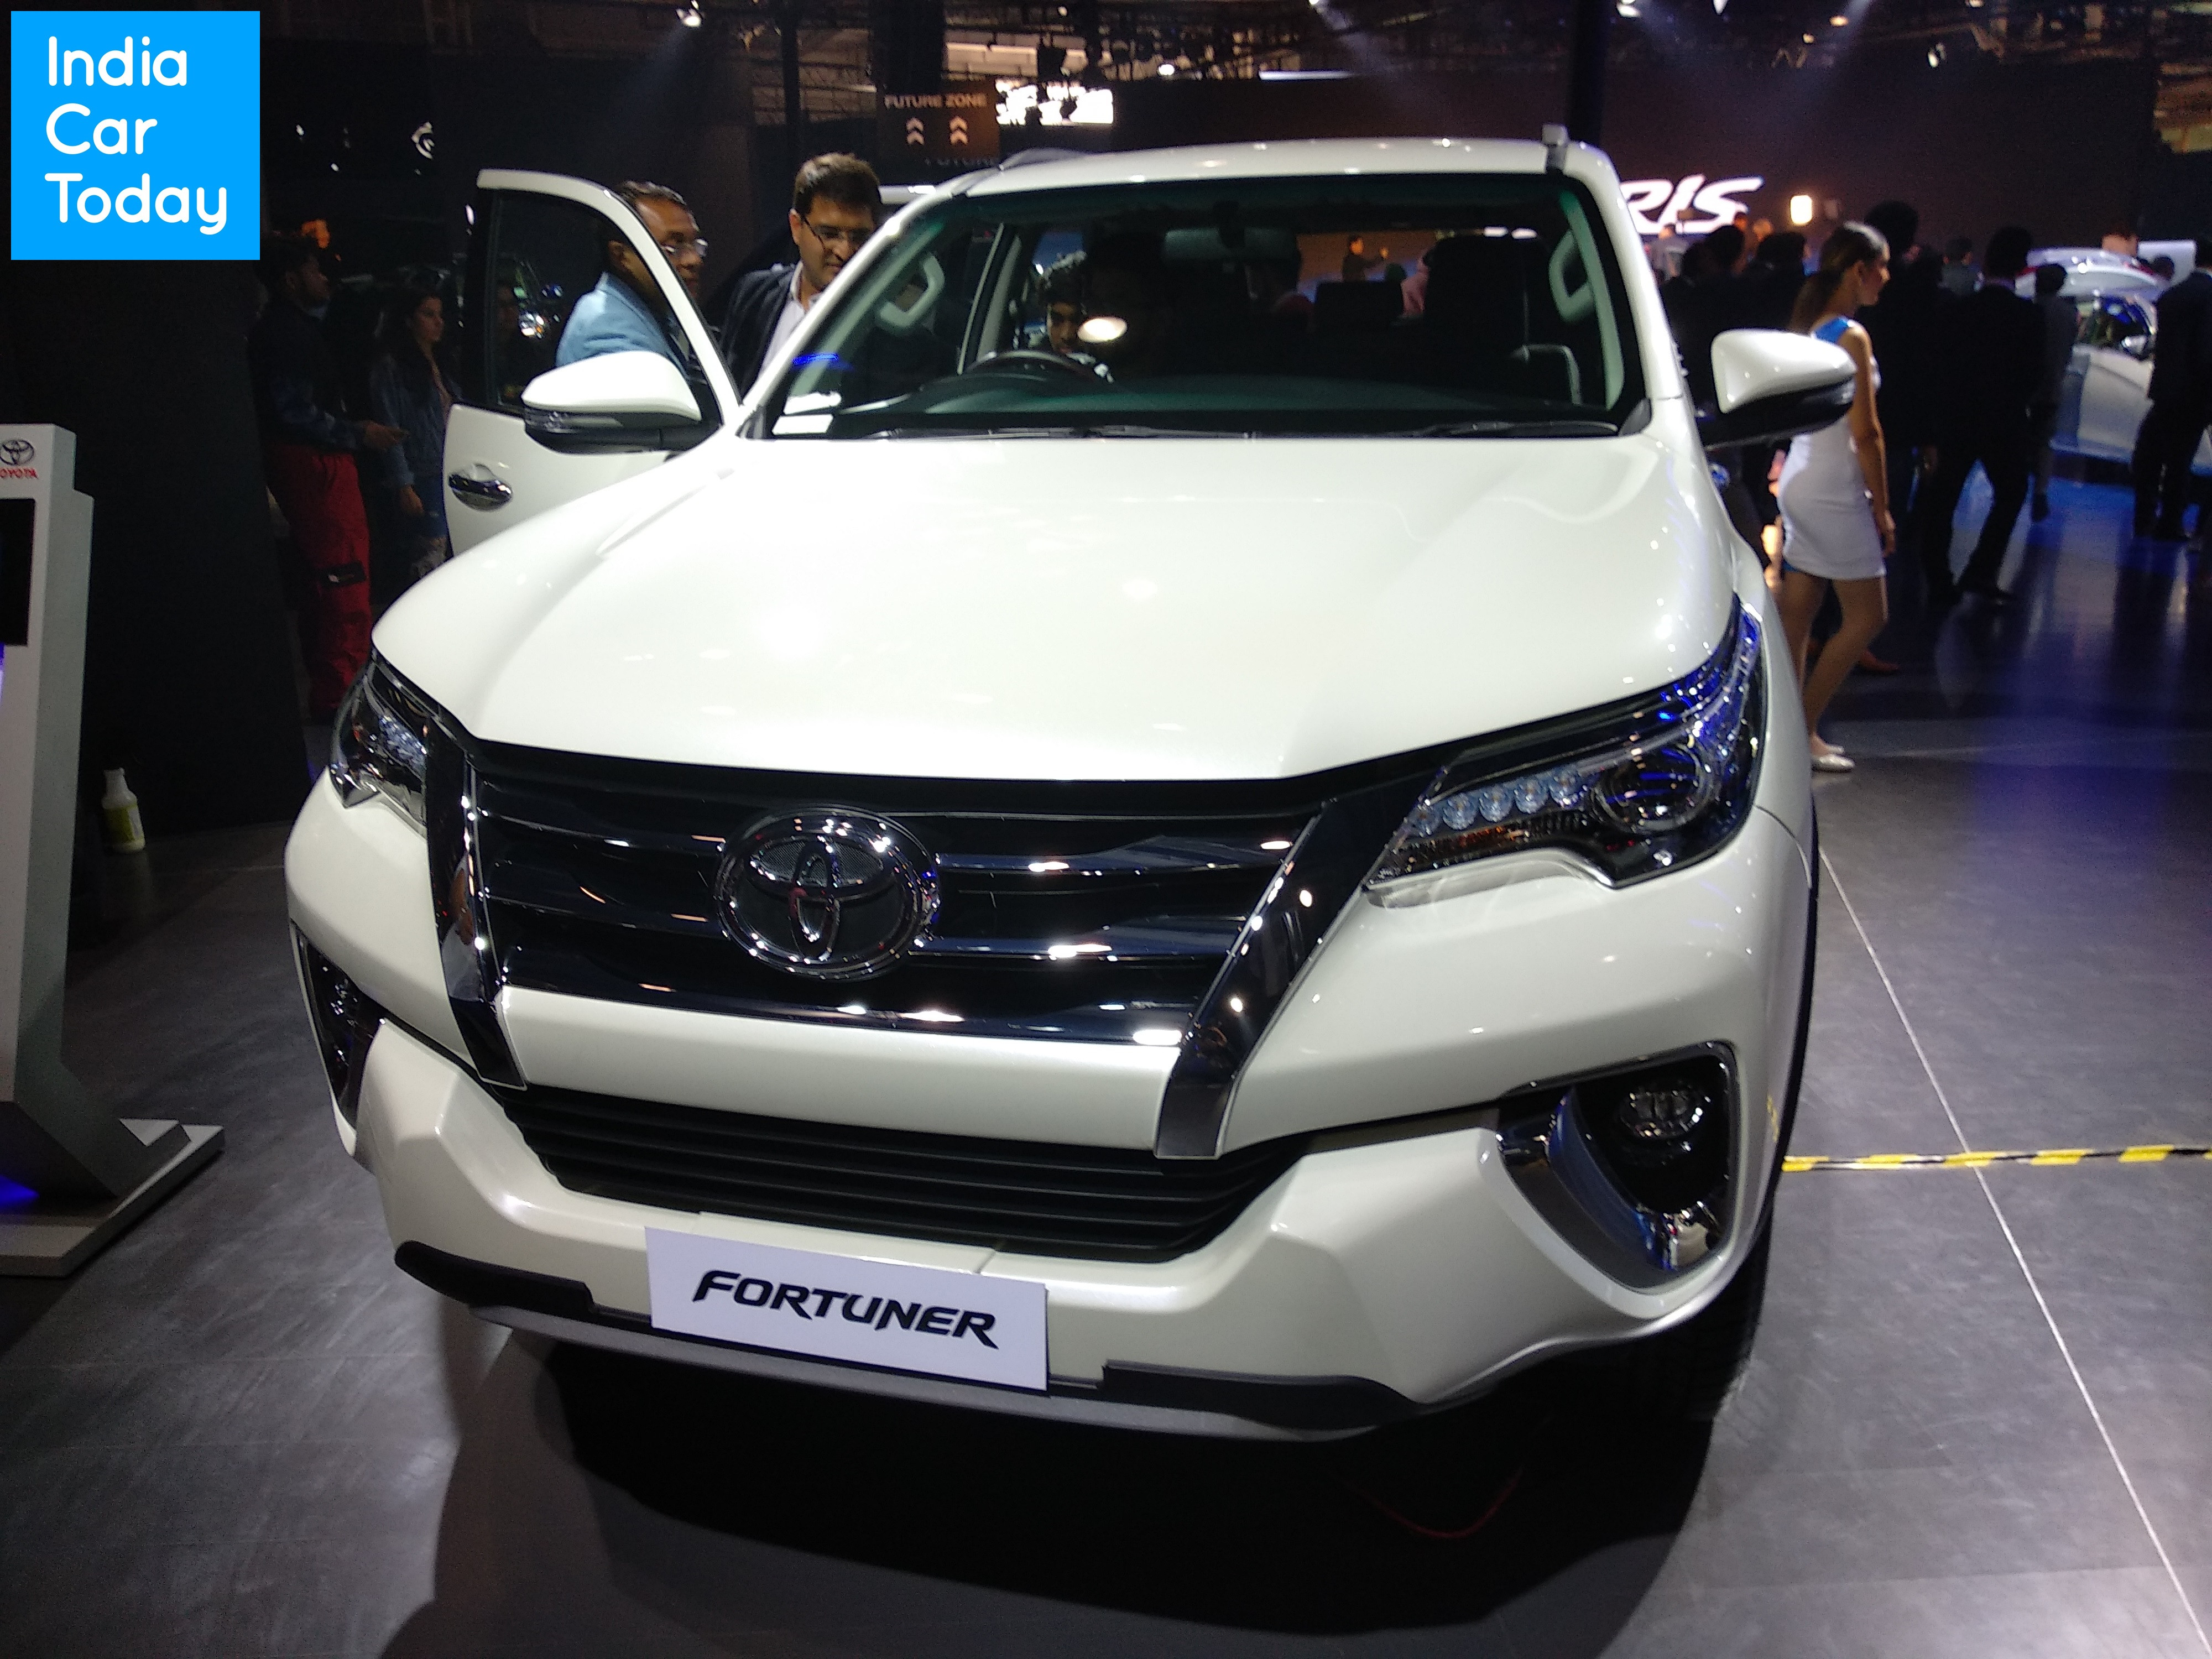 Android Hd Source - New Ssangyong Actyon Sport 2017 , HD Wallpaper & Backgrounds